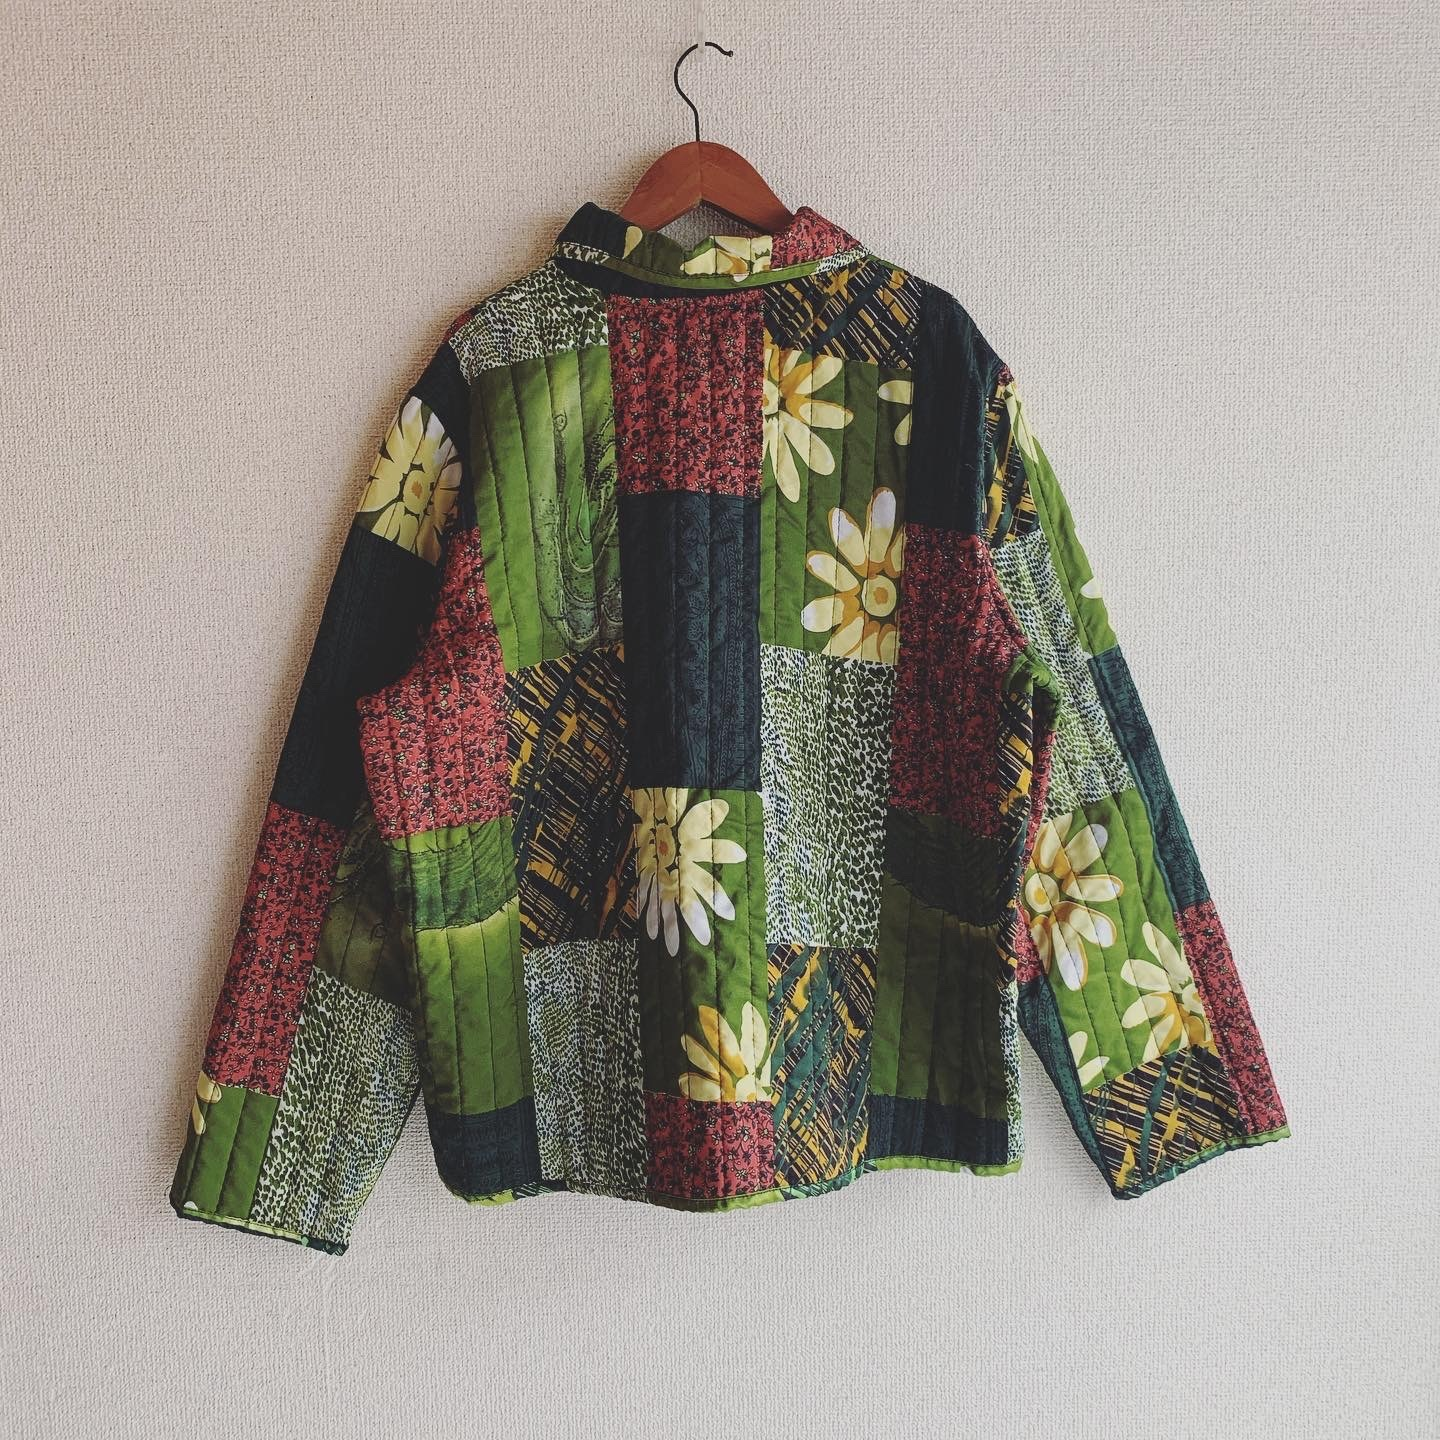 【SALE】vintage quilting jacket